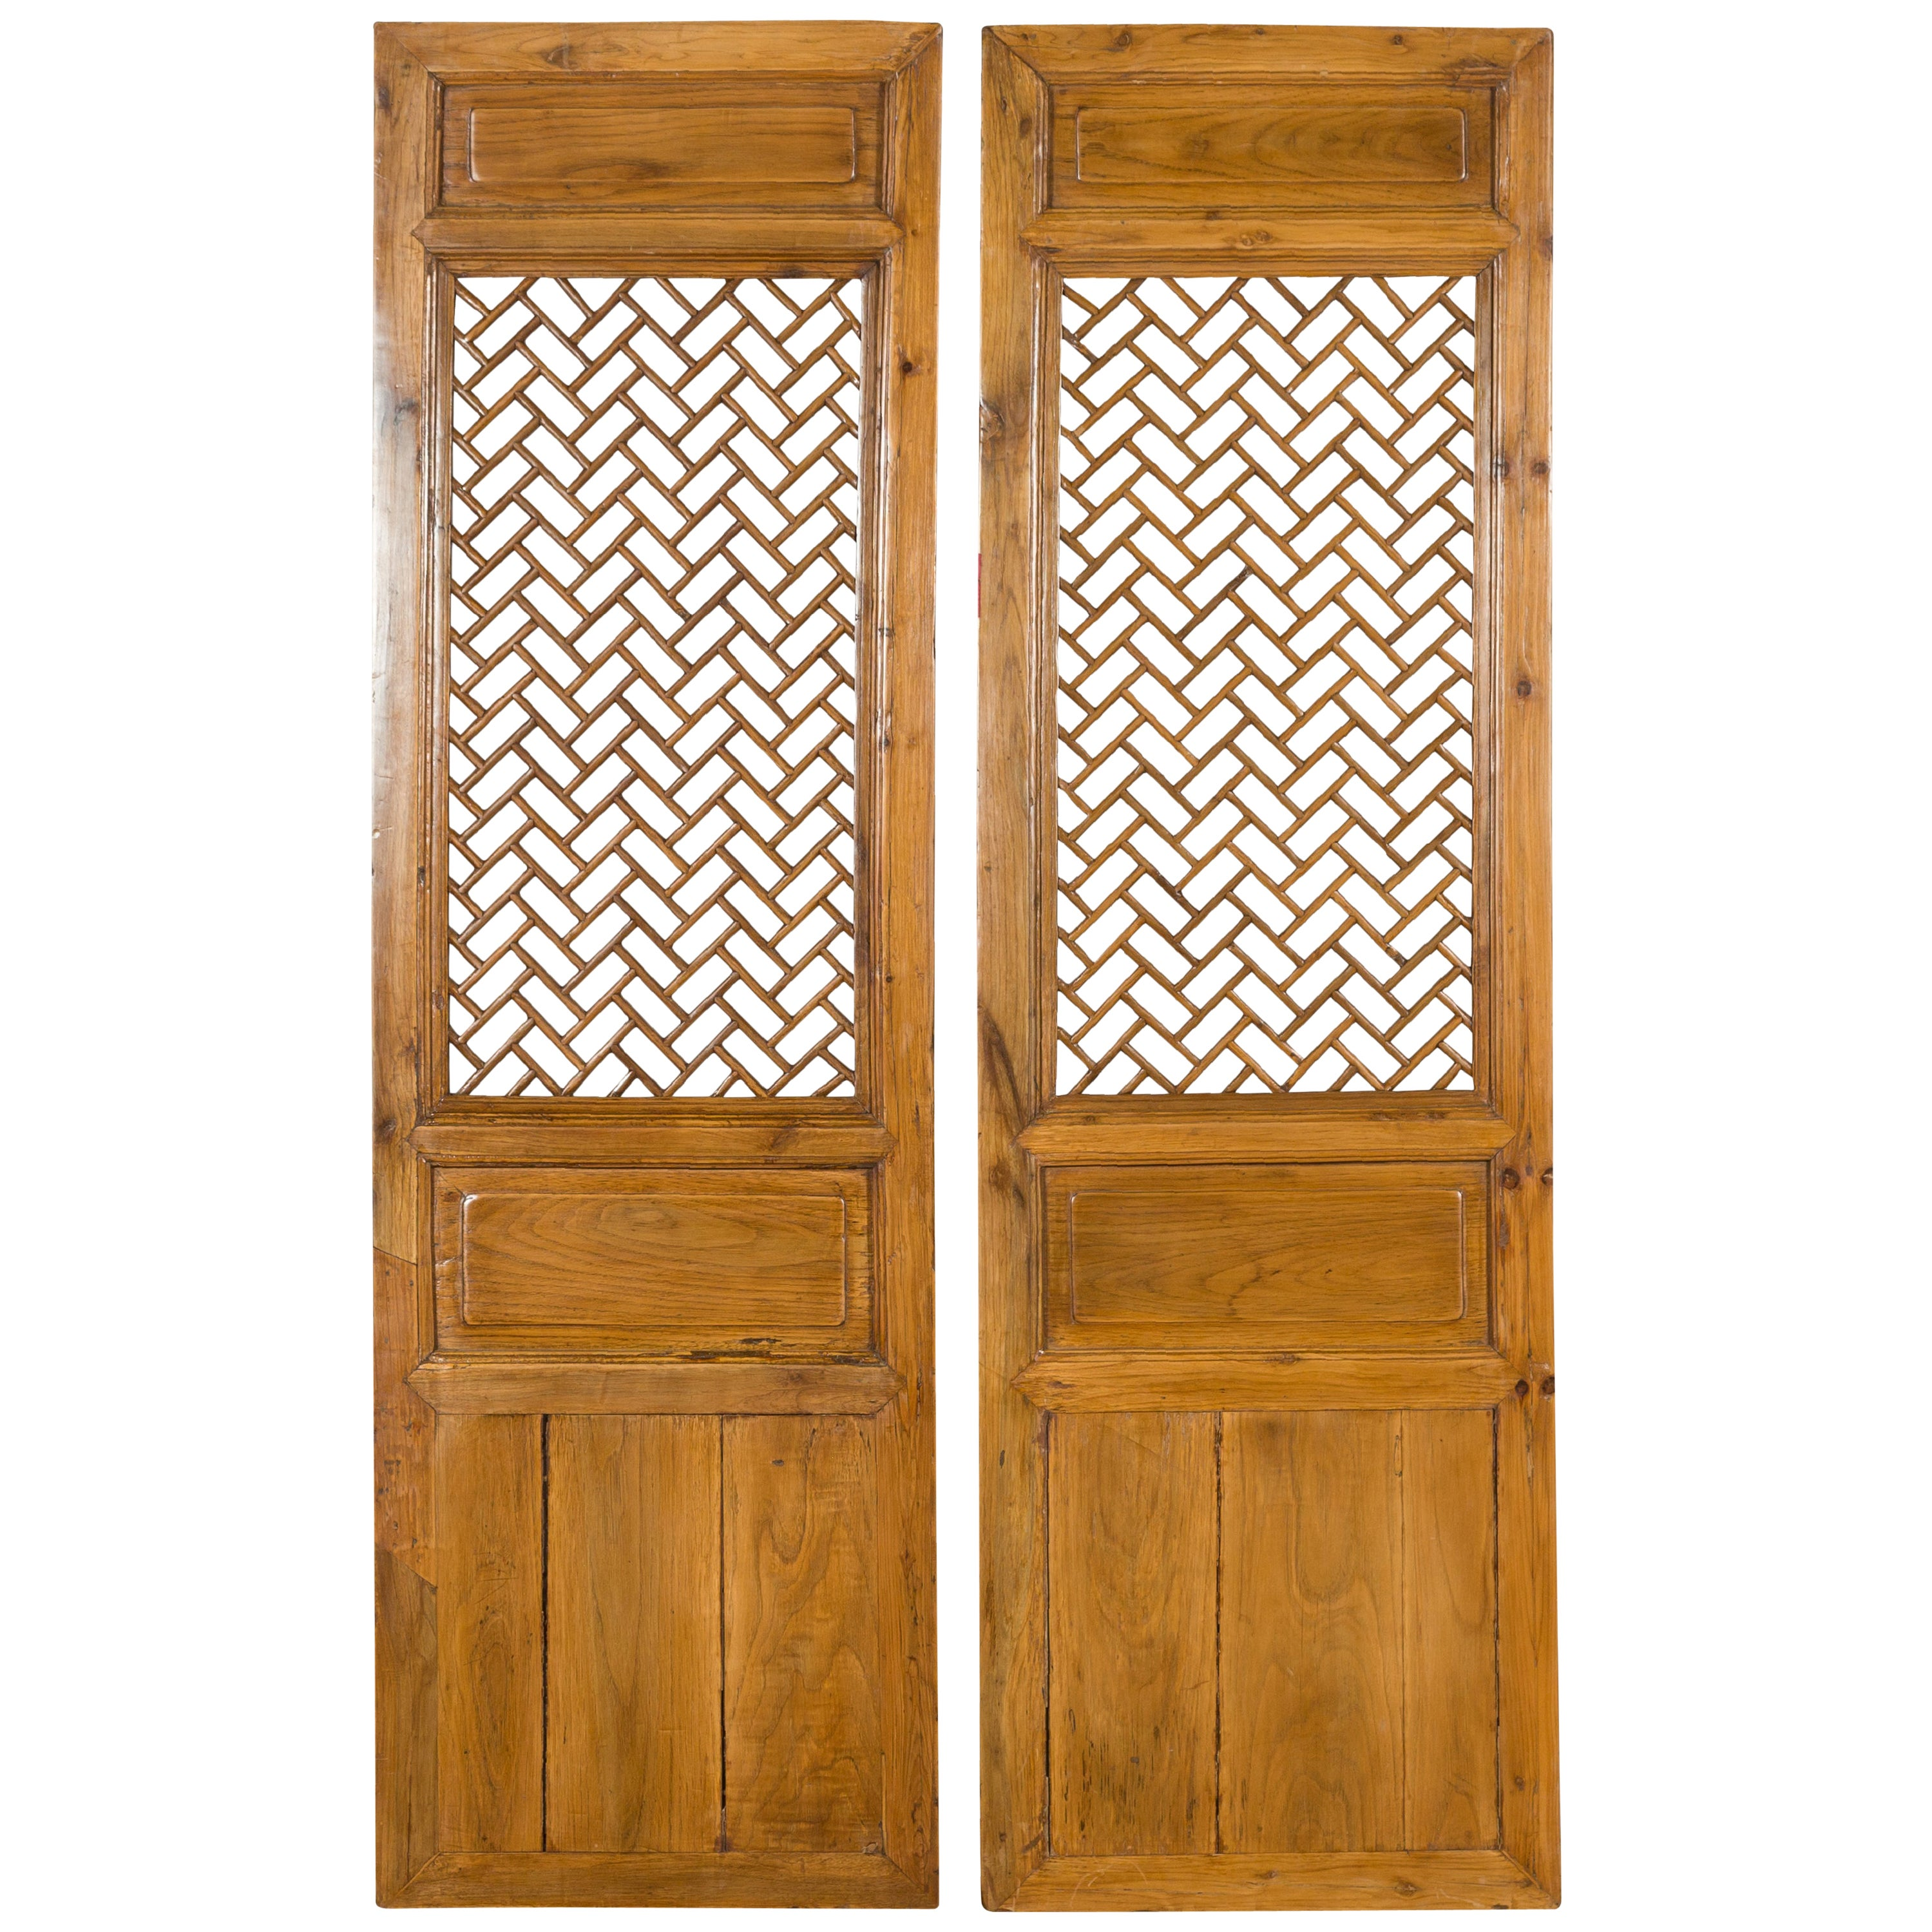 Pair of Chinese Qing Dynasty 19th Century Carved Screens with Fretwork Motifs